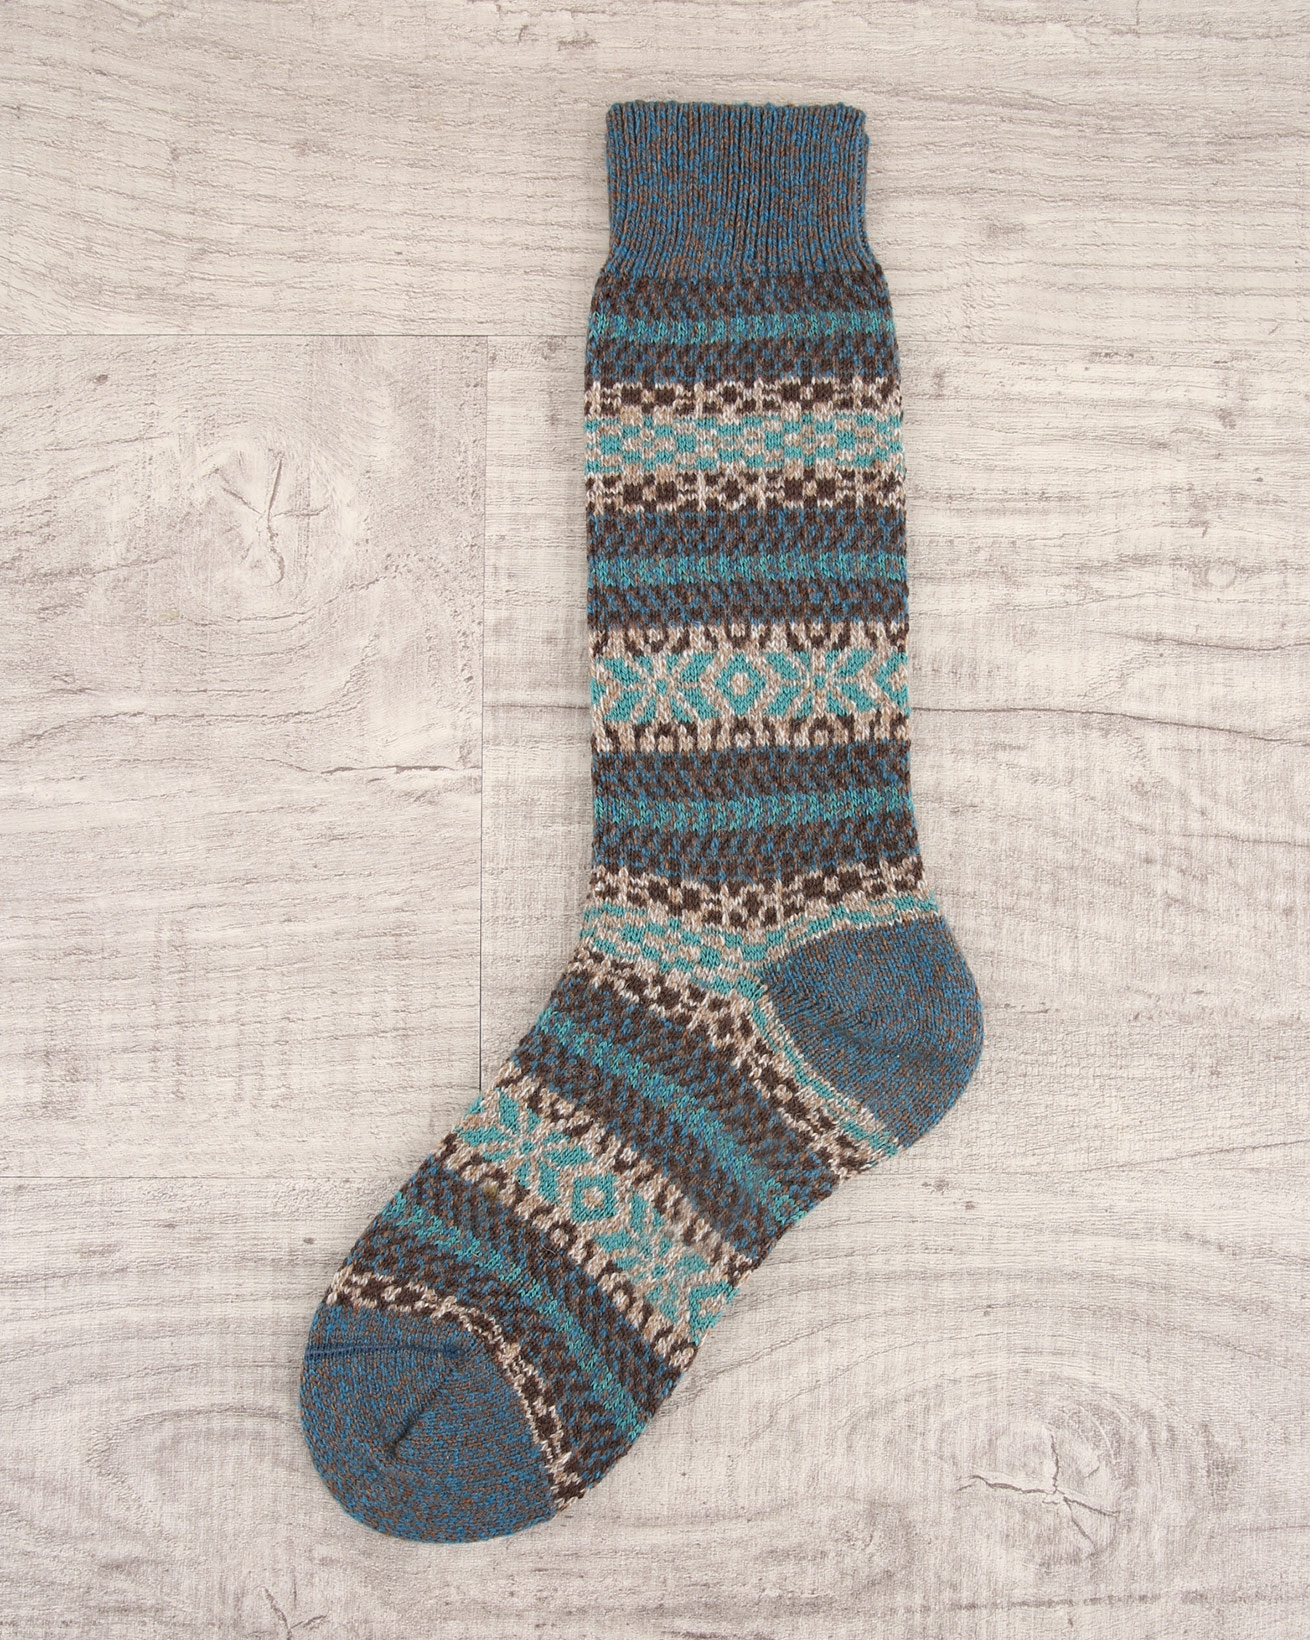 7556-lfs-mens socks-blue _slate.jpg